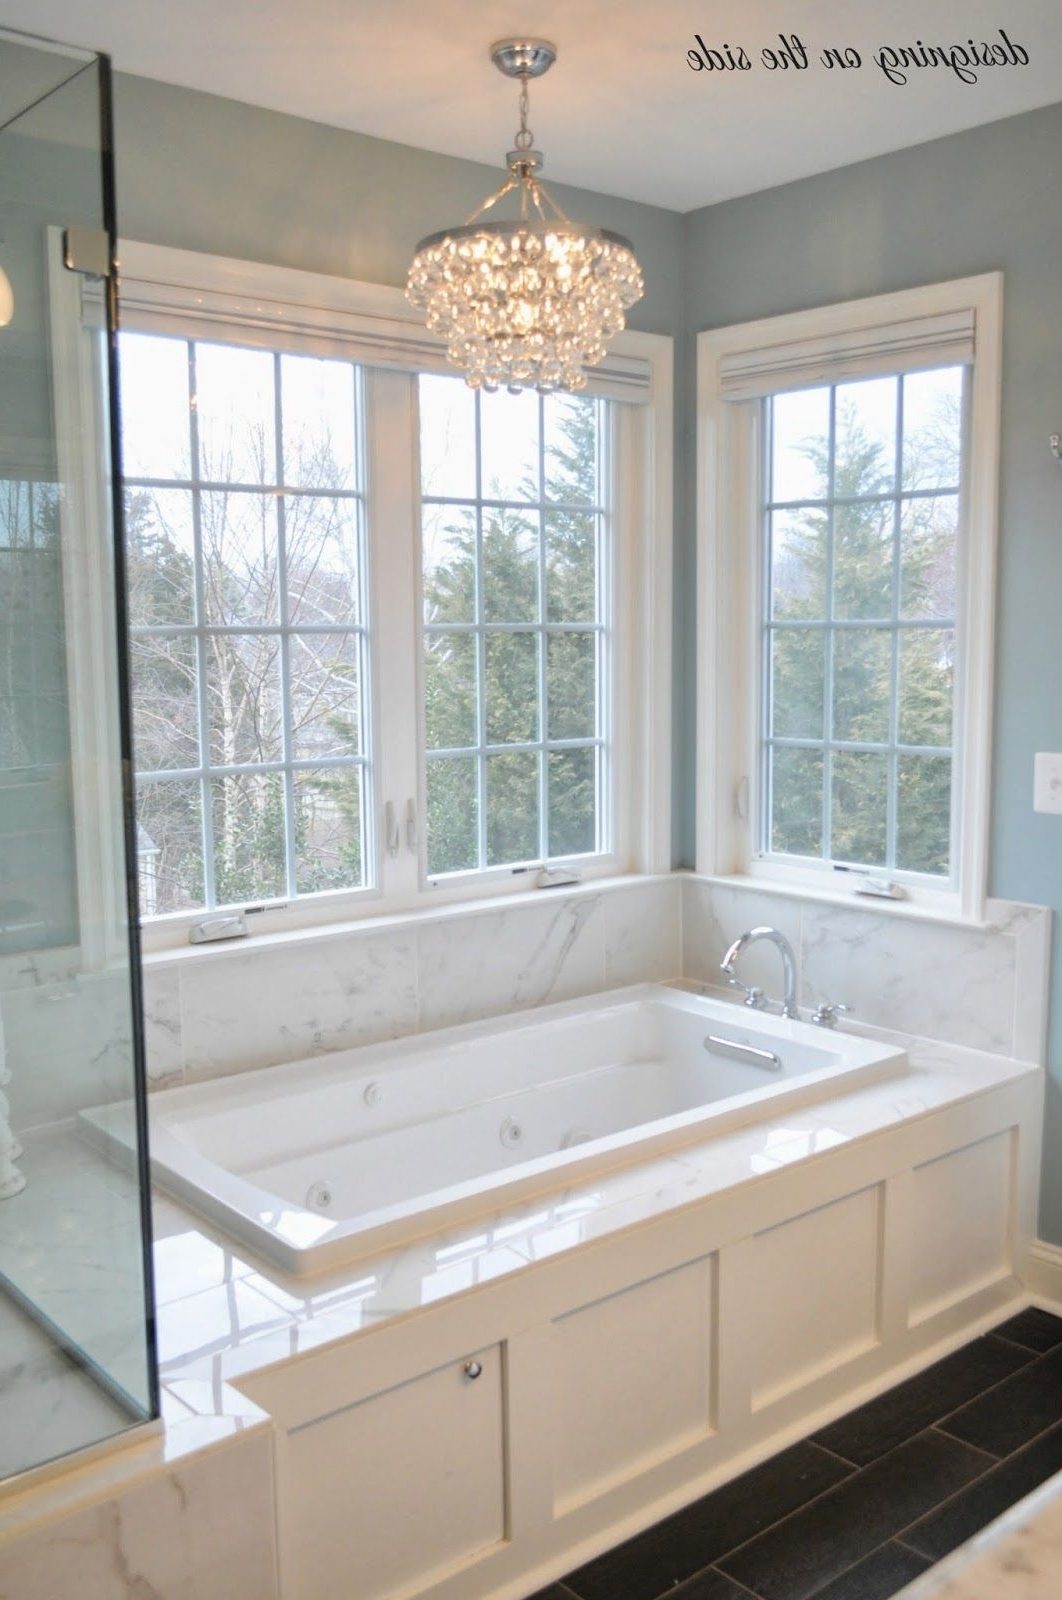 Master Bath, Marble Tile, Sw Rain, Crystal Chandelier, Tile That Intended For 2017 Wall Mounted Bathroom Chandeliers (View 6 of 15)